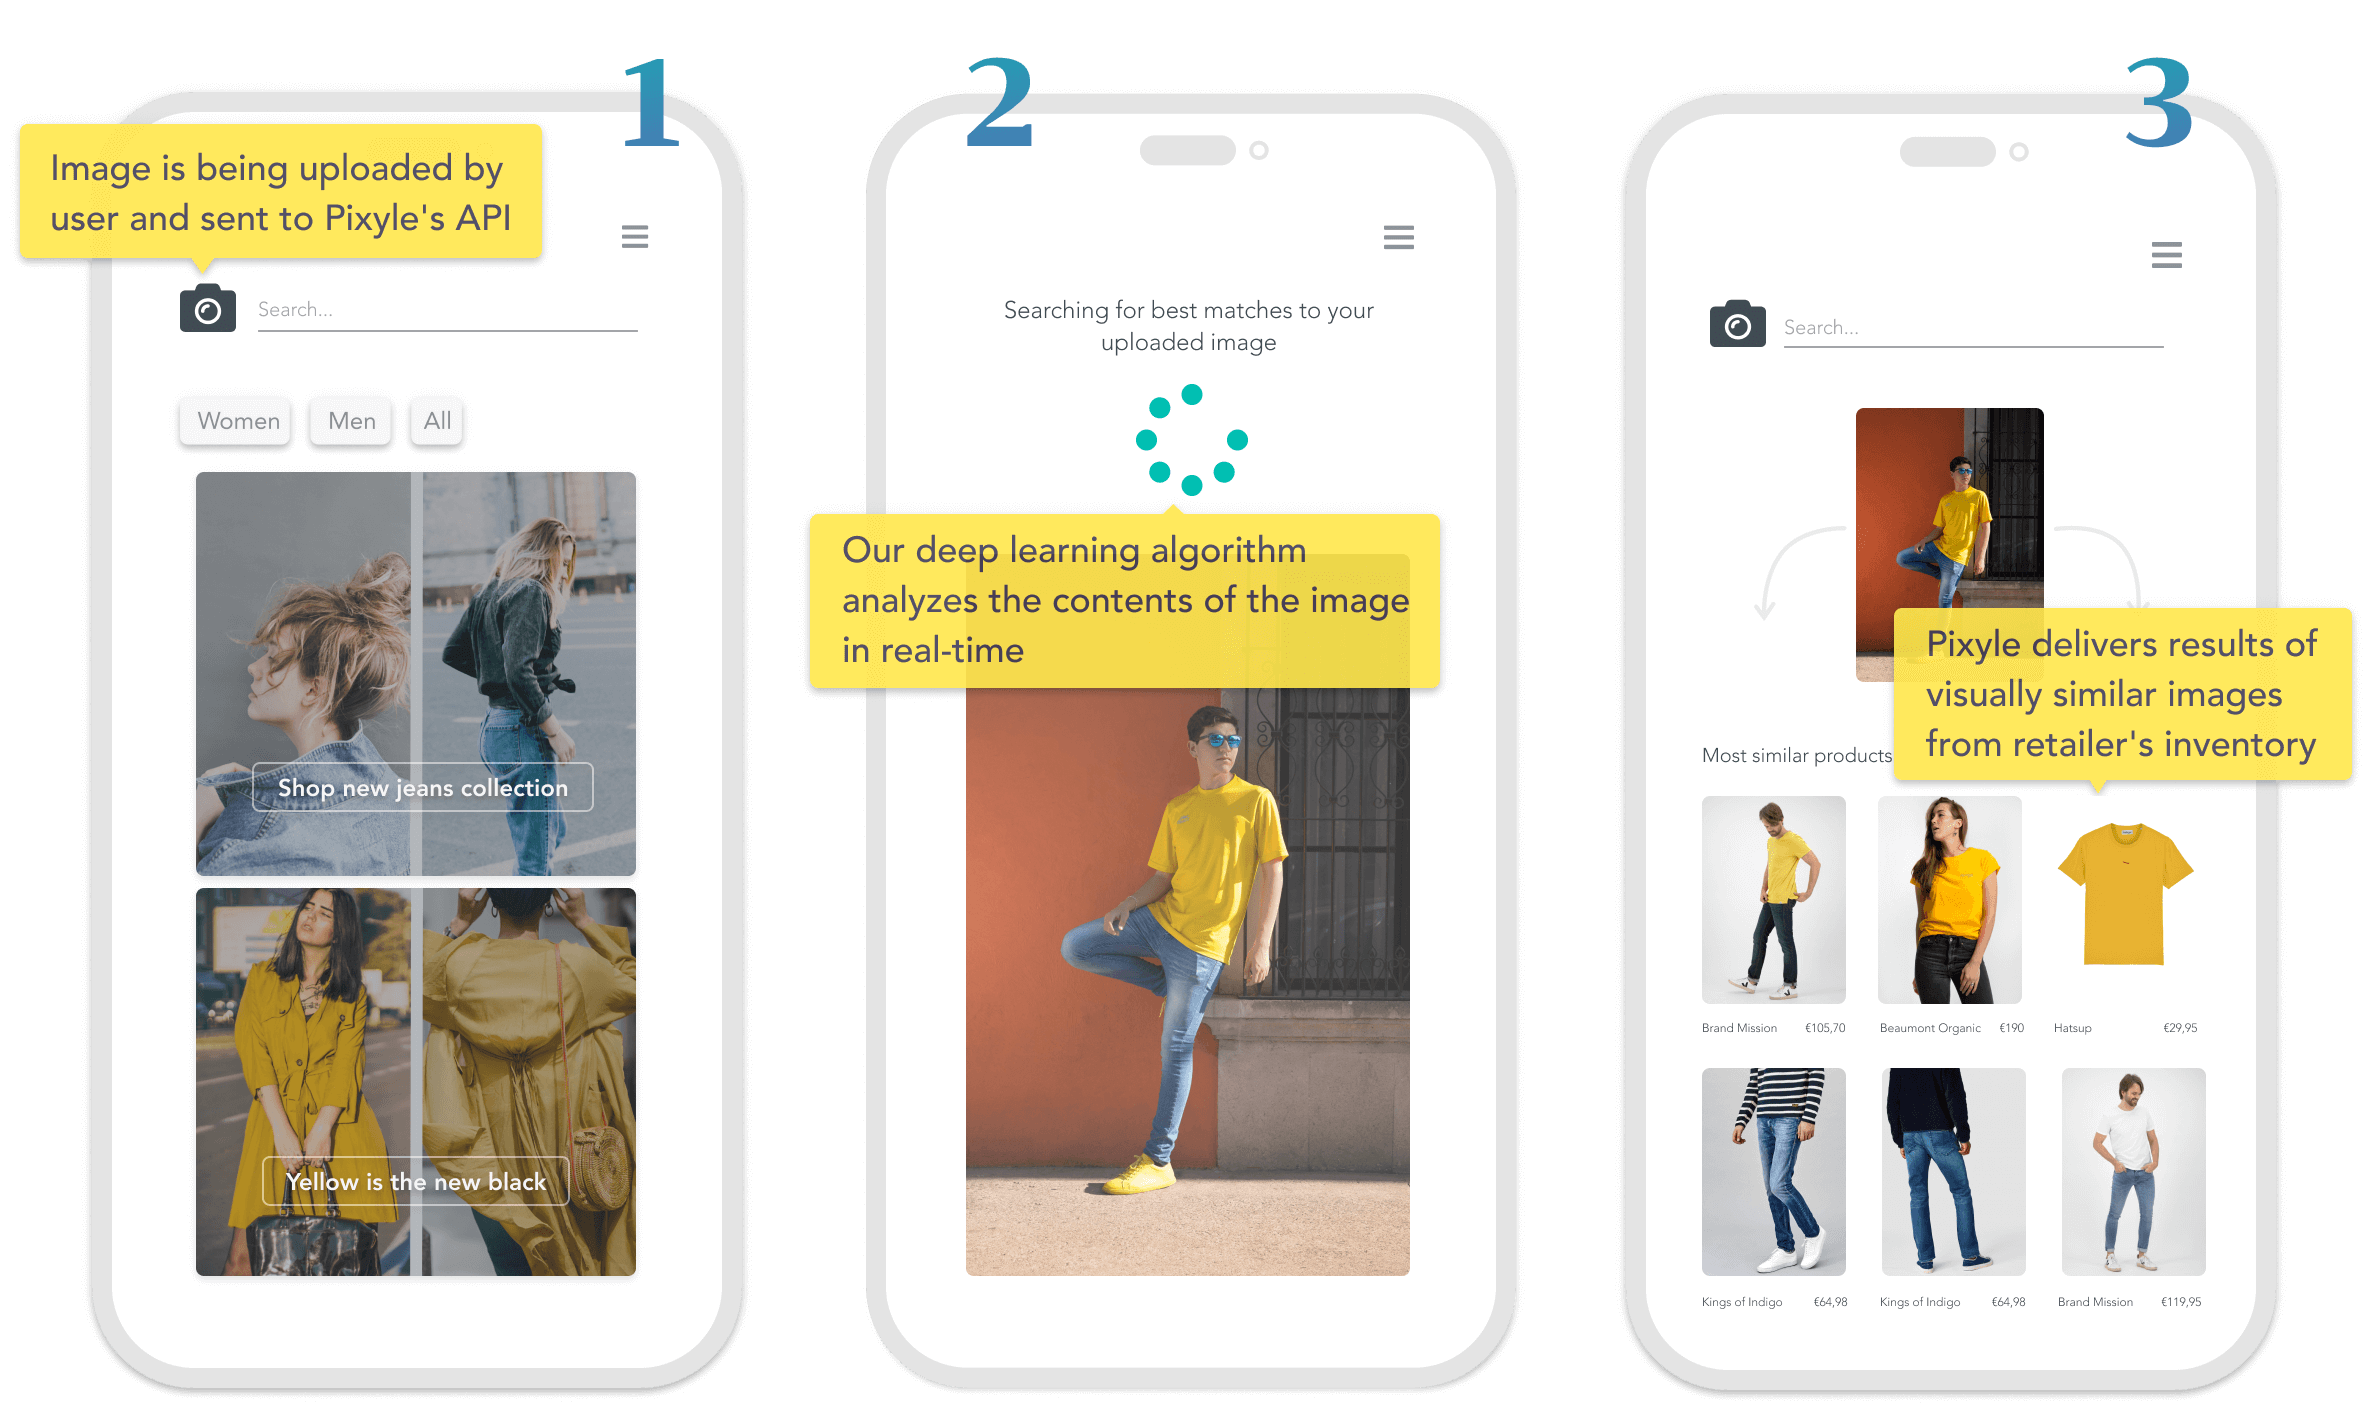 The process of pixyle's visual search starting with image being uploaded, processed and analyzed ending with delivered similar images from retailer's inventory